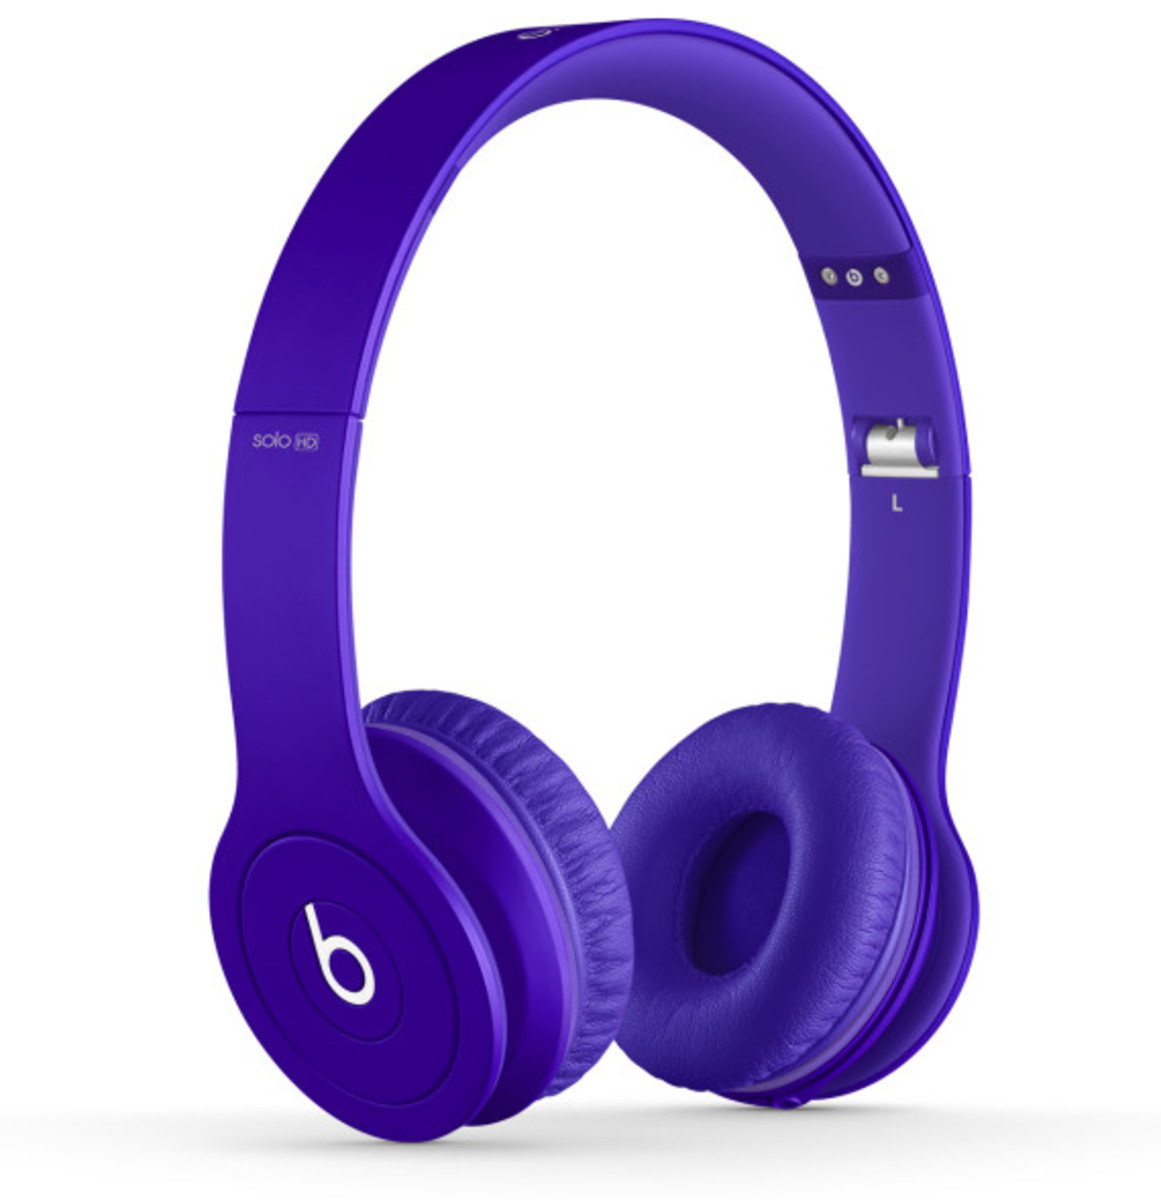 beats-by-dre-solo-hd-drenched-in-color-headphone-collection-21